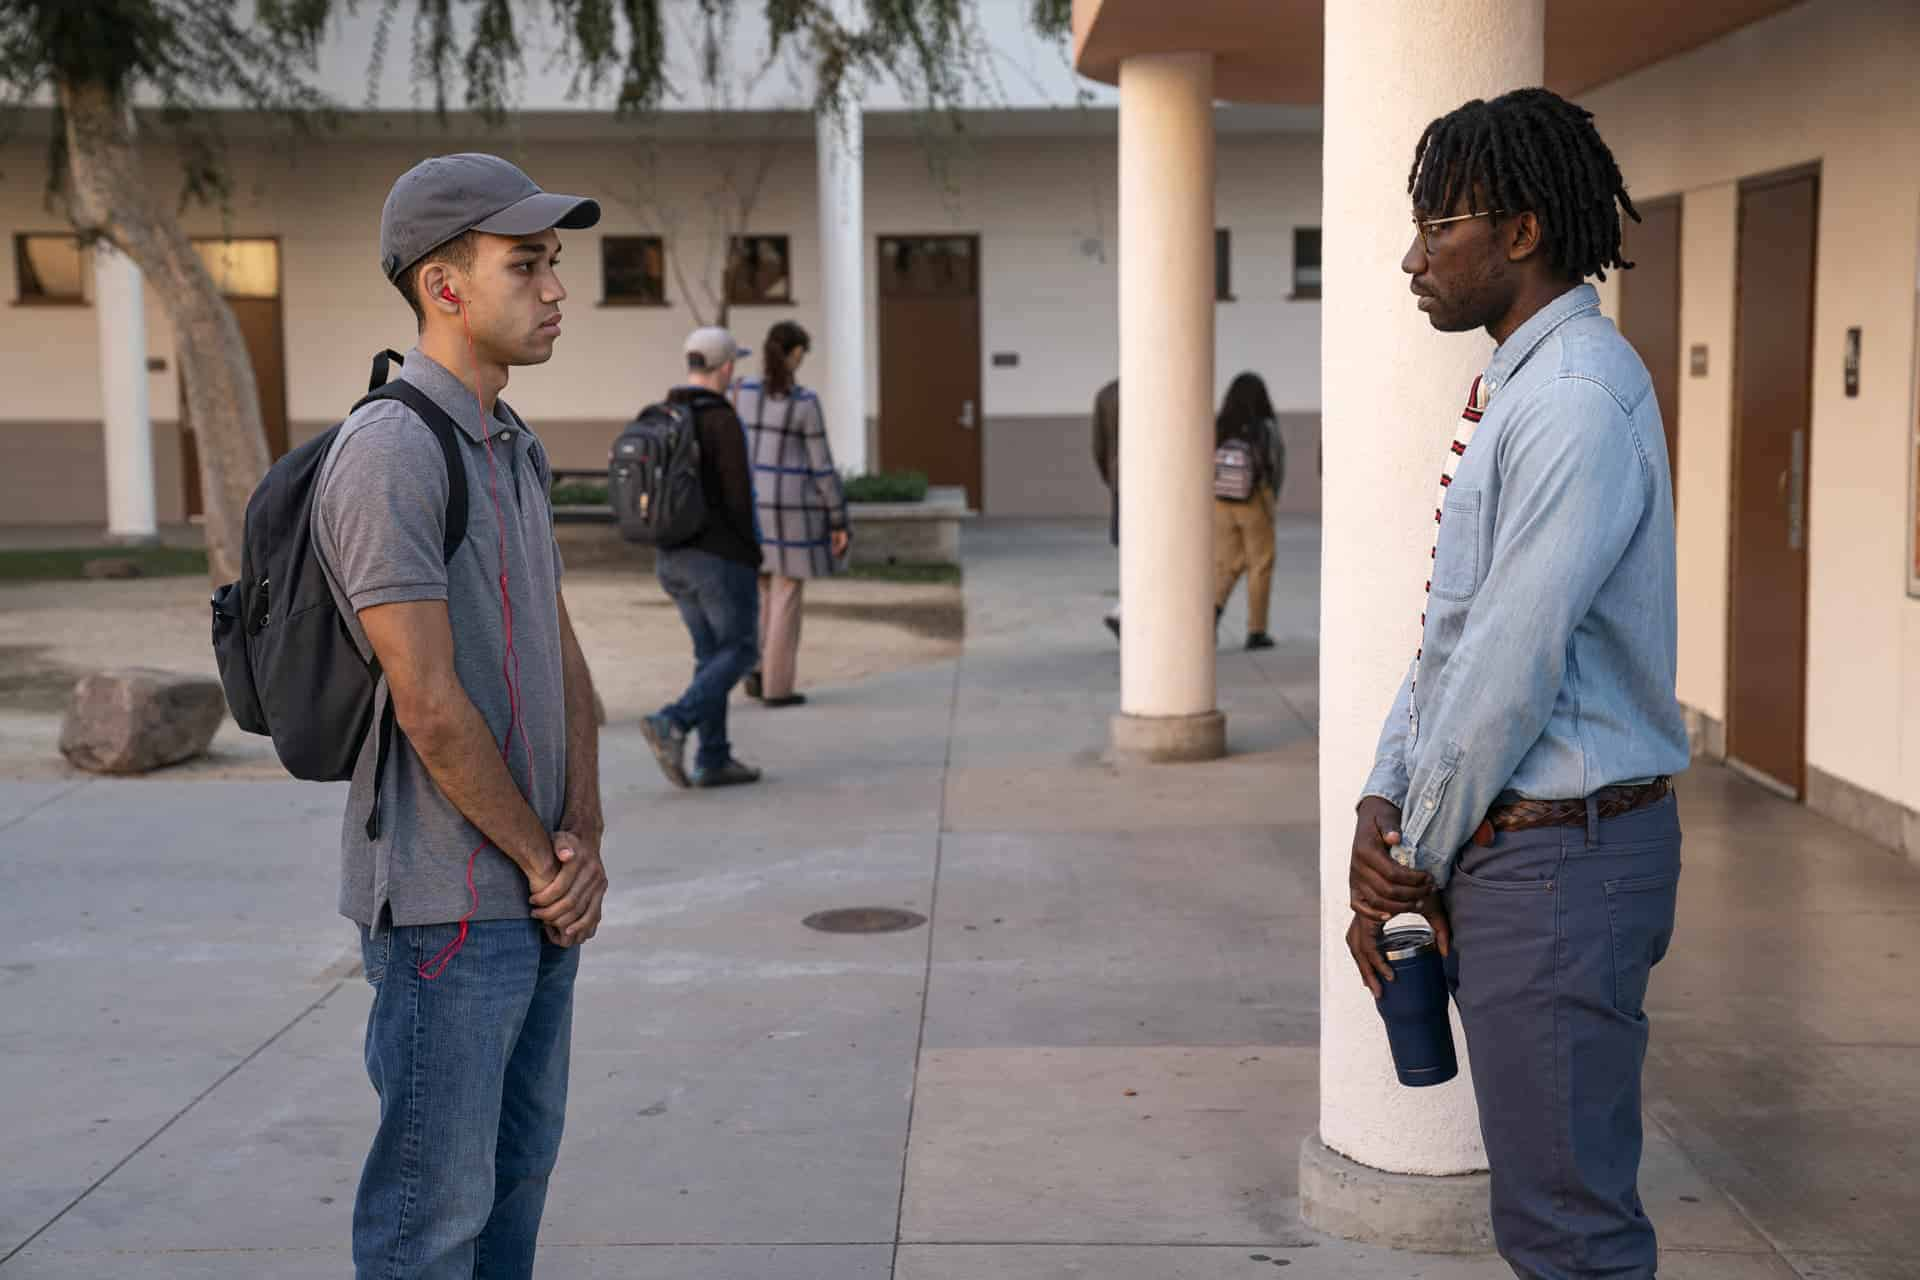 Chester learning Sam will no longer be his guidance counselor